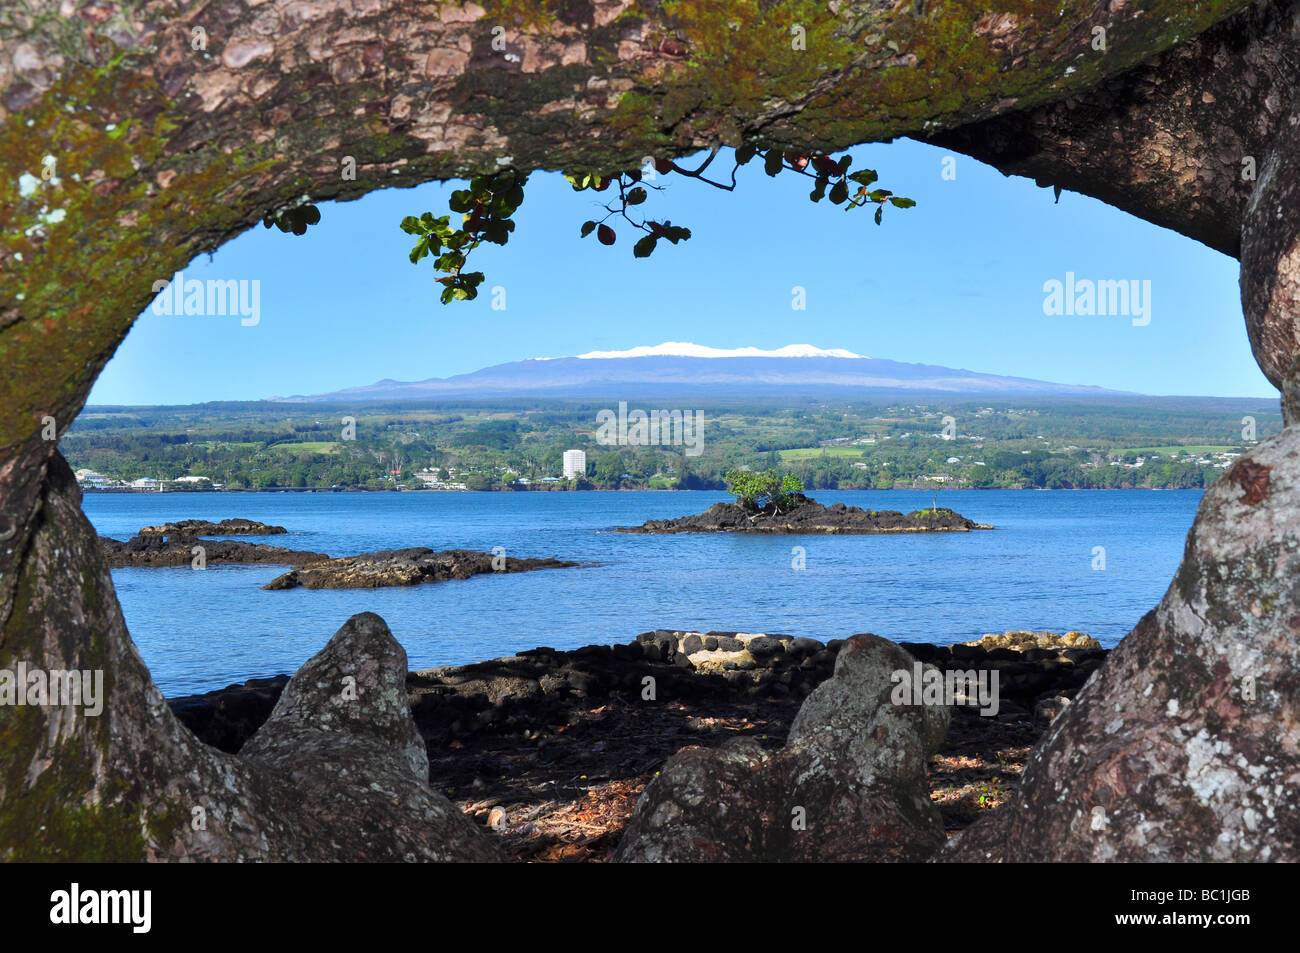 Looking through a large tree across Hilo Bay in Hawaii you can see the extinct snow covered volcano Mauna Kea. - Stock Image